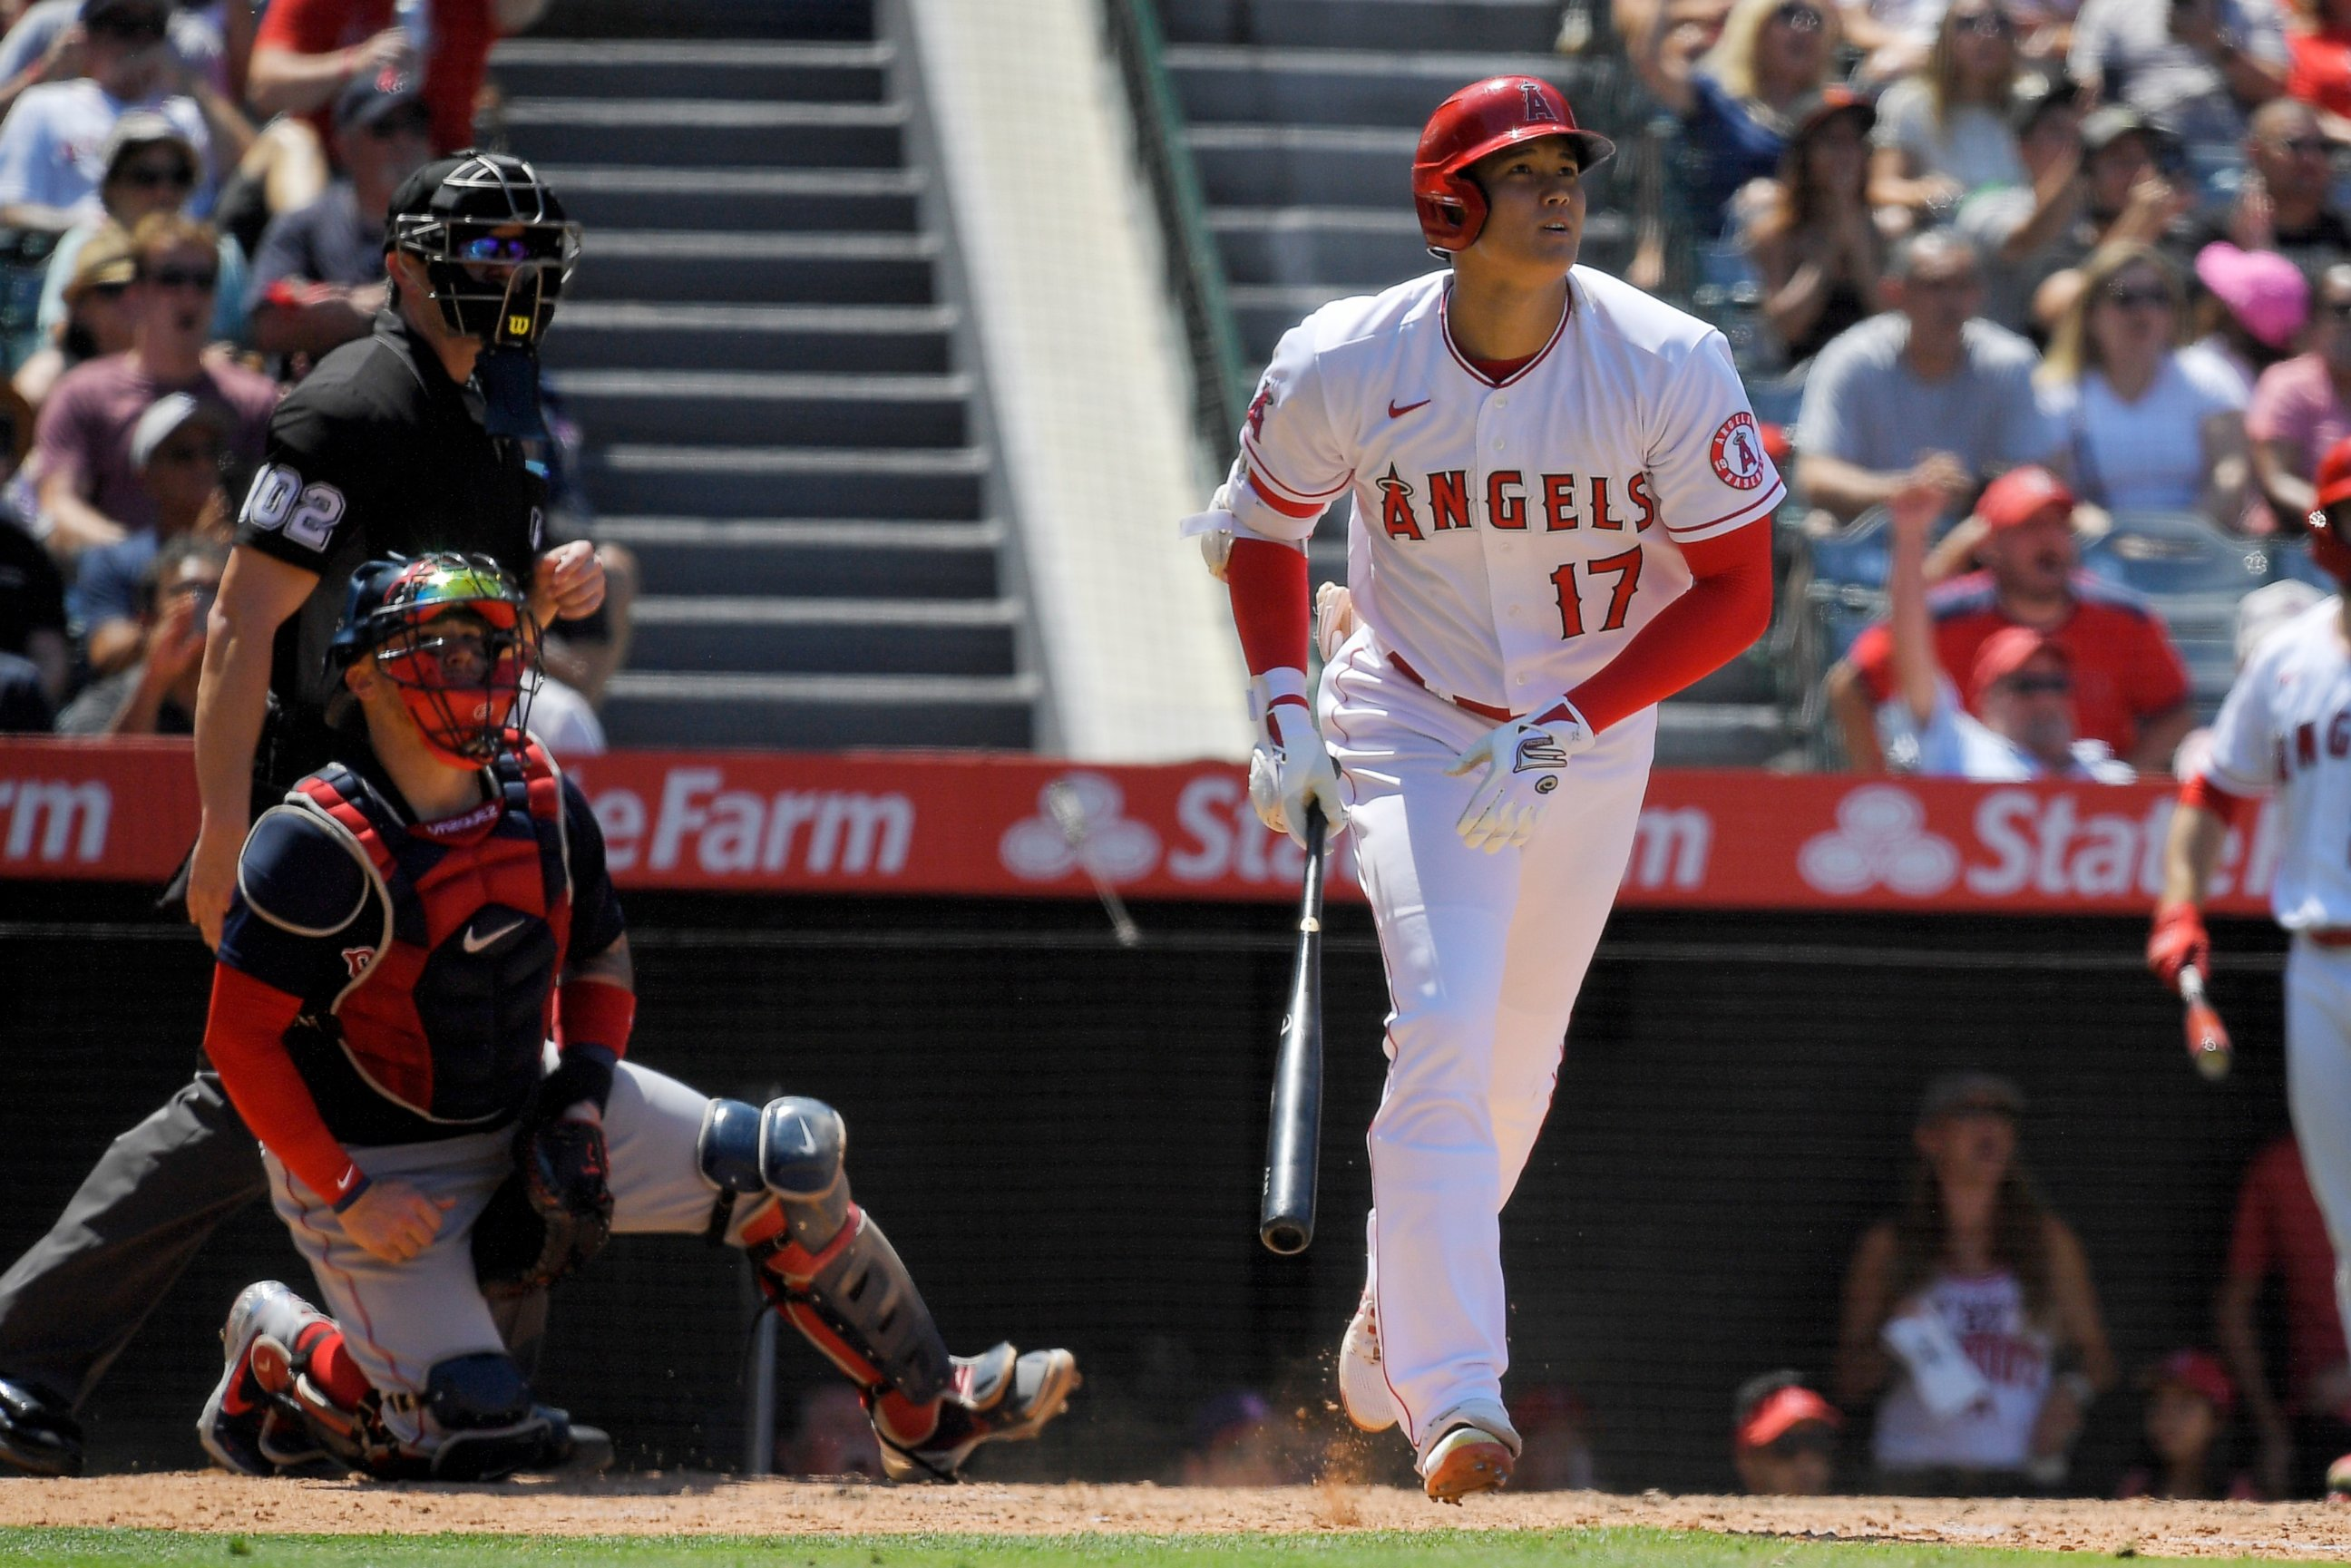 Shohei Ohtani Hits Milestone 32nd Home Run in Angels' 5-4 Victory Over Red Sox